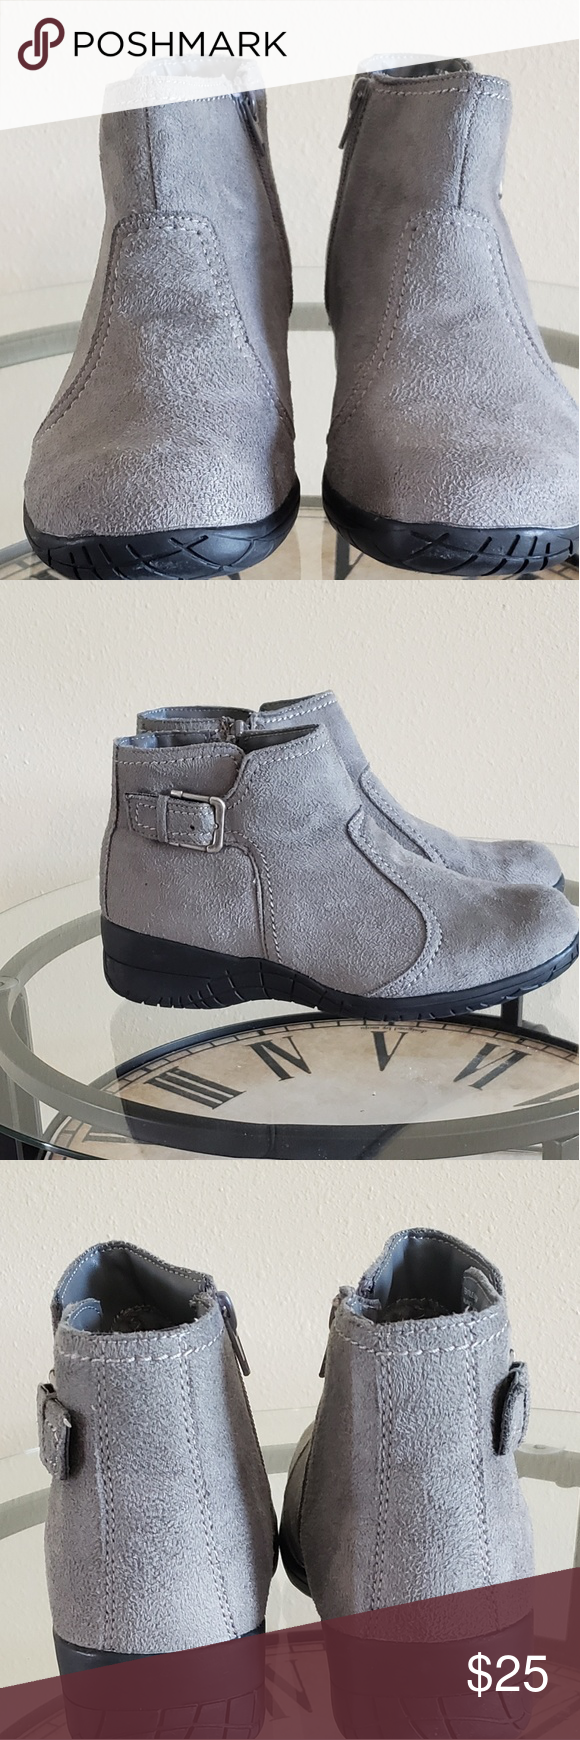 358bdcab2e2 Basic Edition Grey Booties Grey Booties Worn Twice Still In Good Condition  for Future Owner Basic Editions Shoes Ankle Boots   Booties